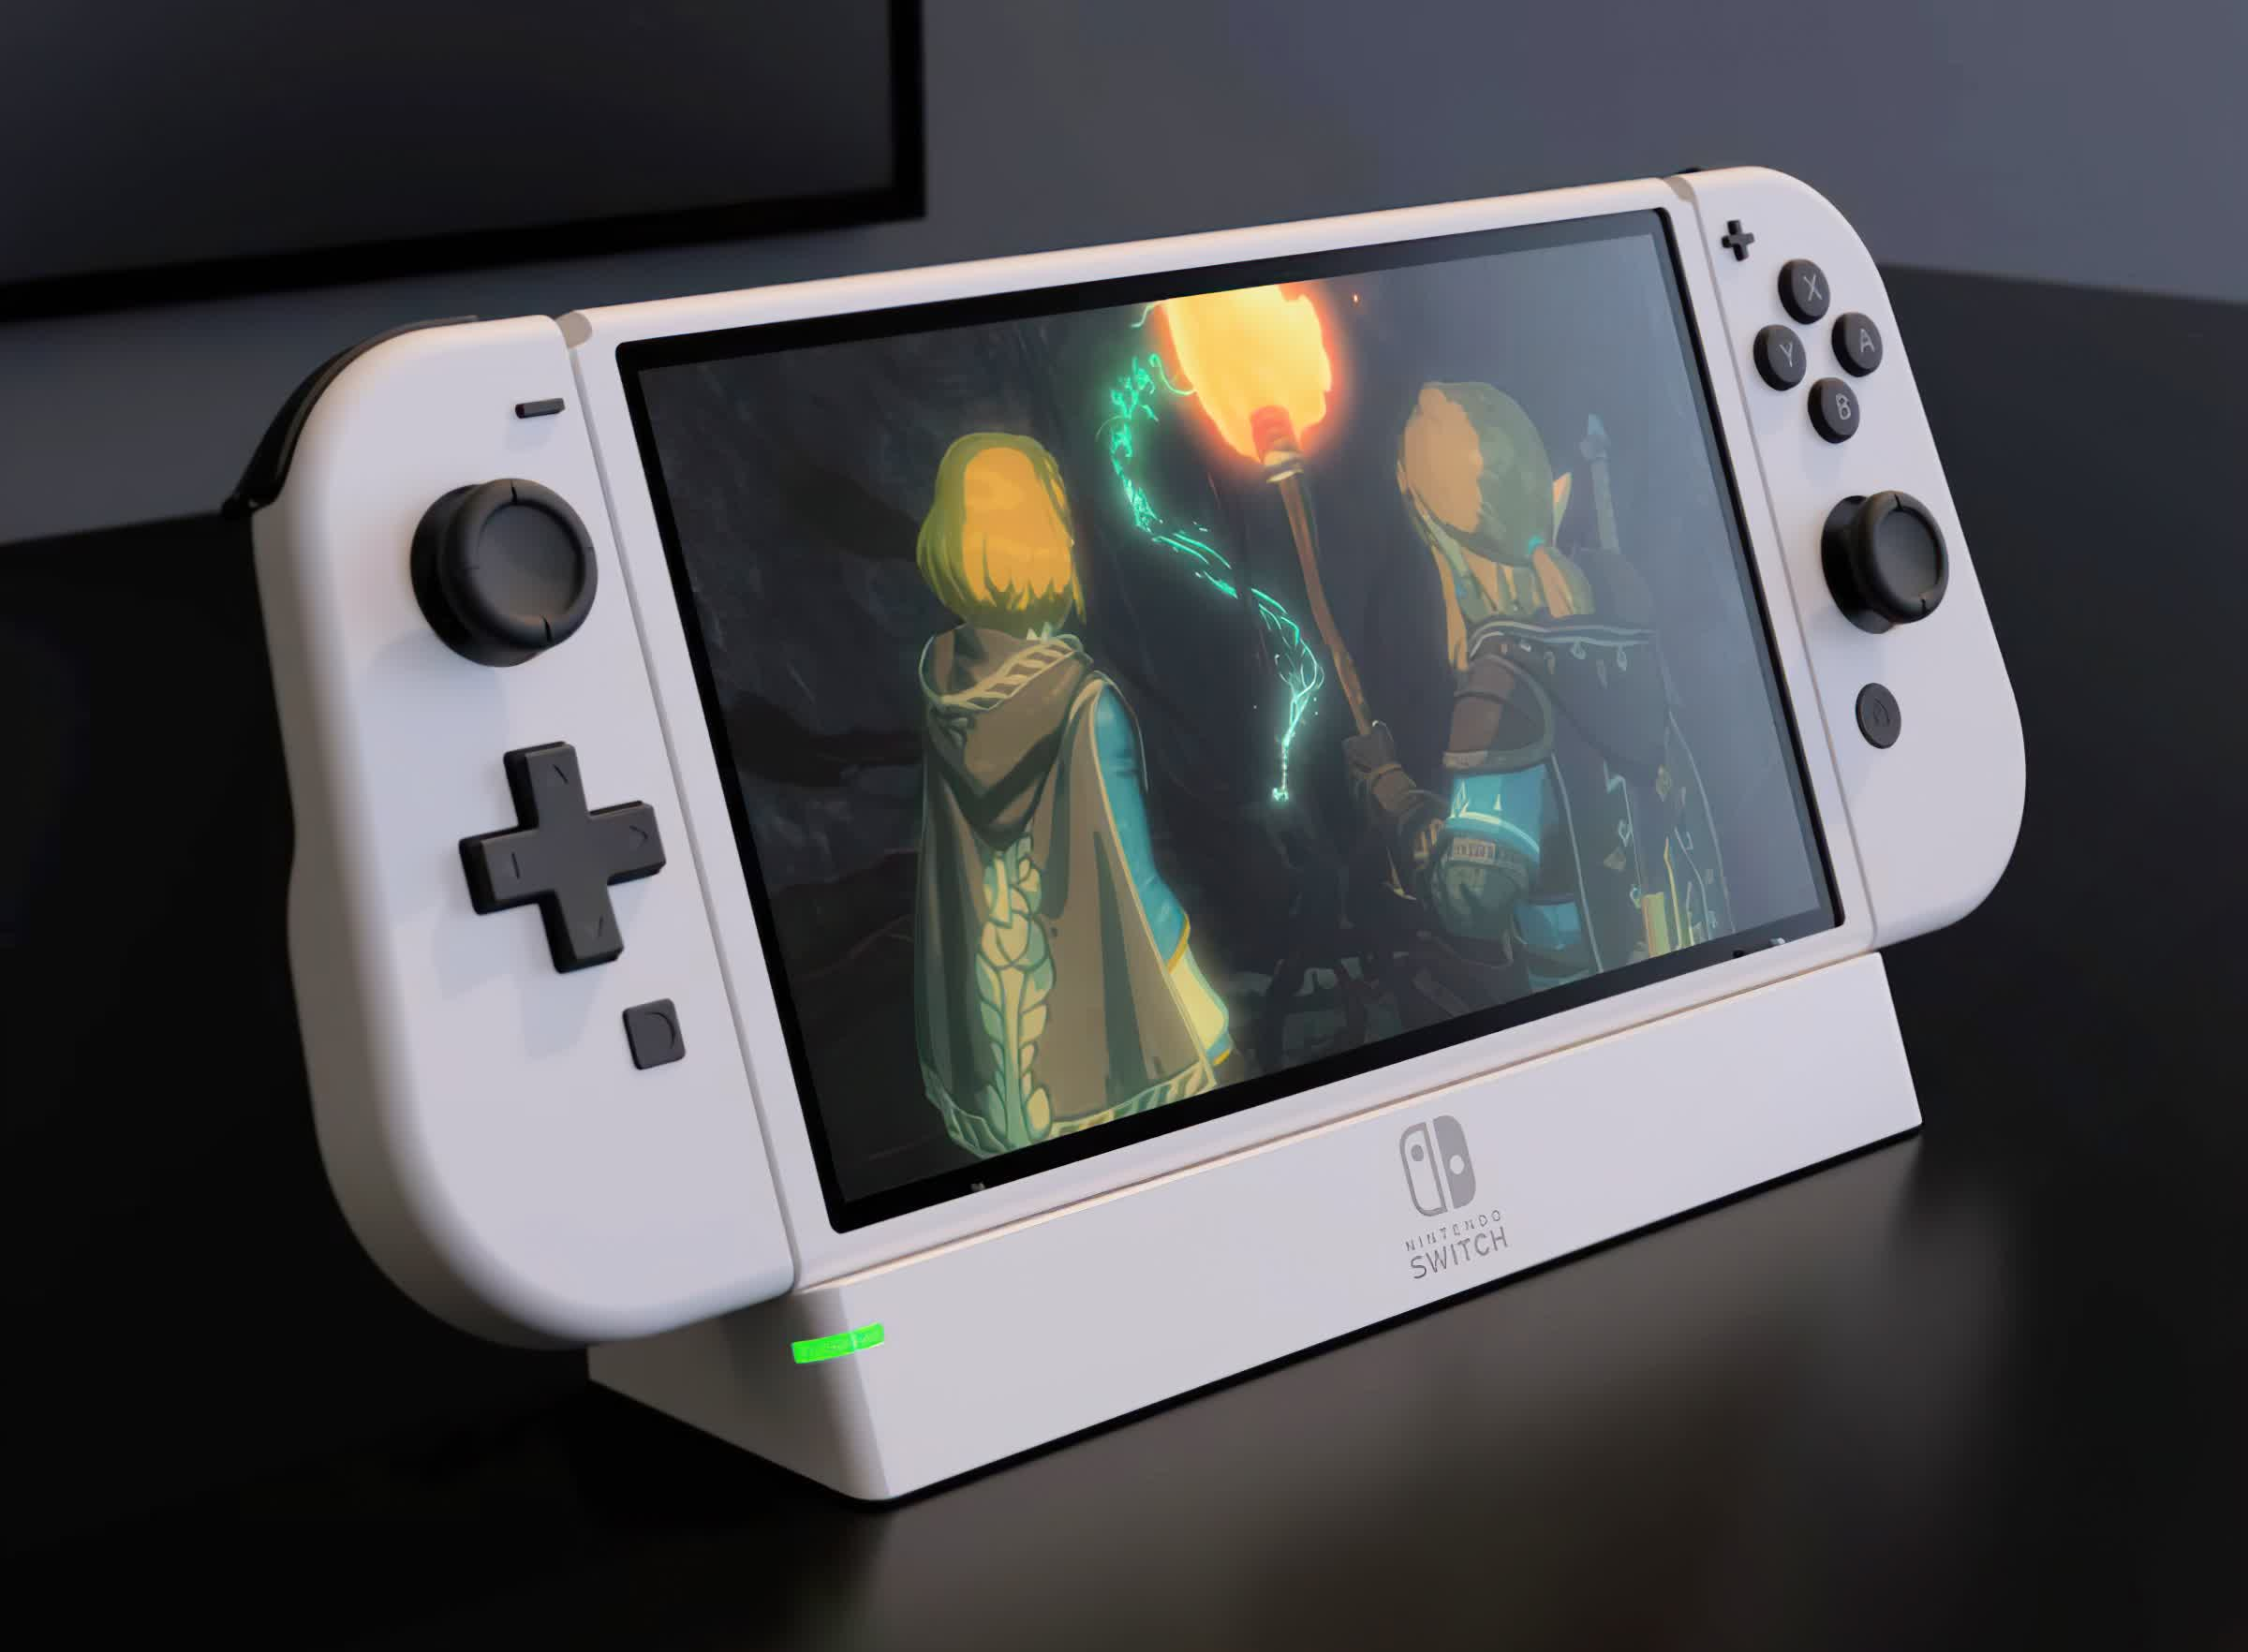 Nintendo has 'no plans' to launch a 4K Switch, despite rumors to the contrary